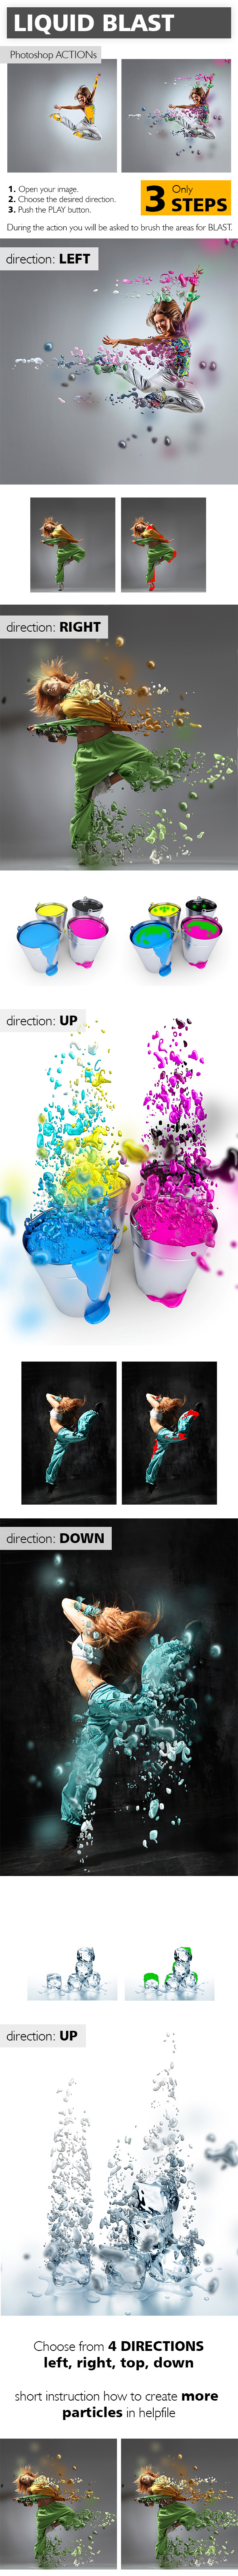 Liquid Blast Photoshop Action